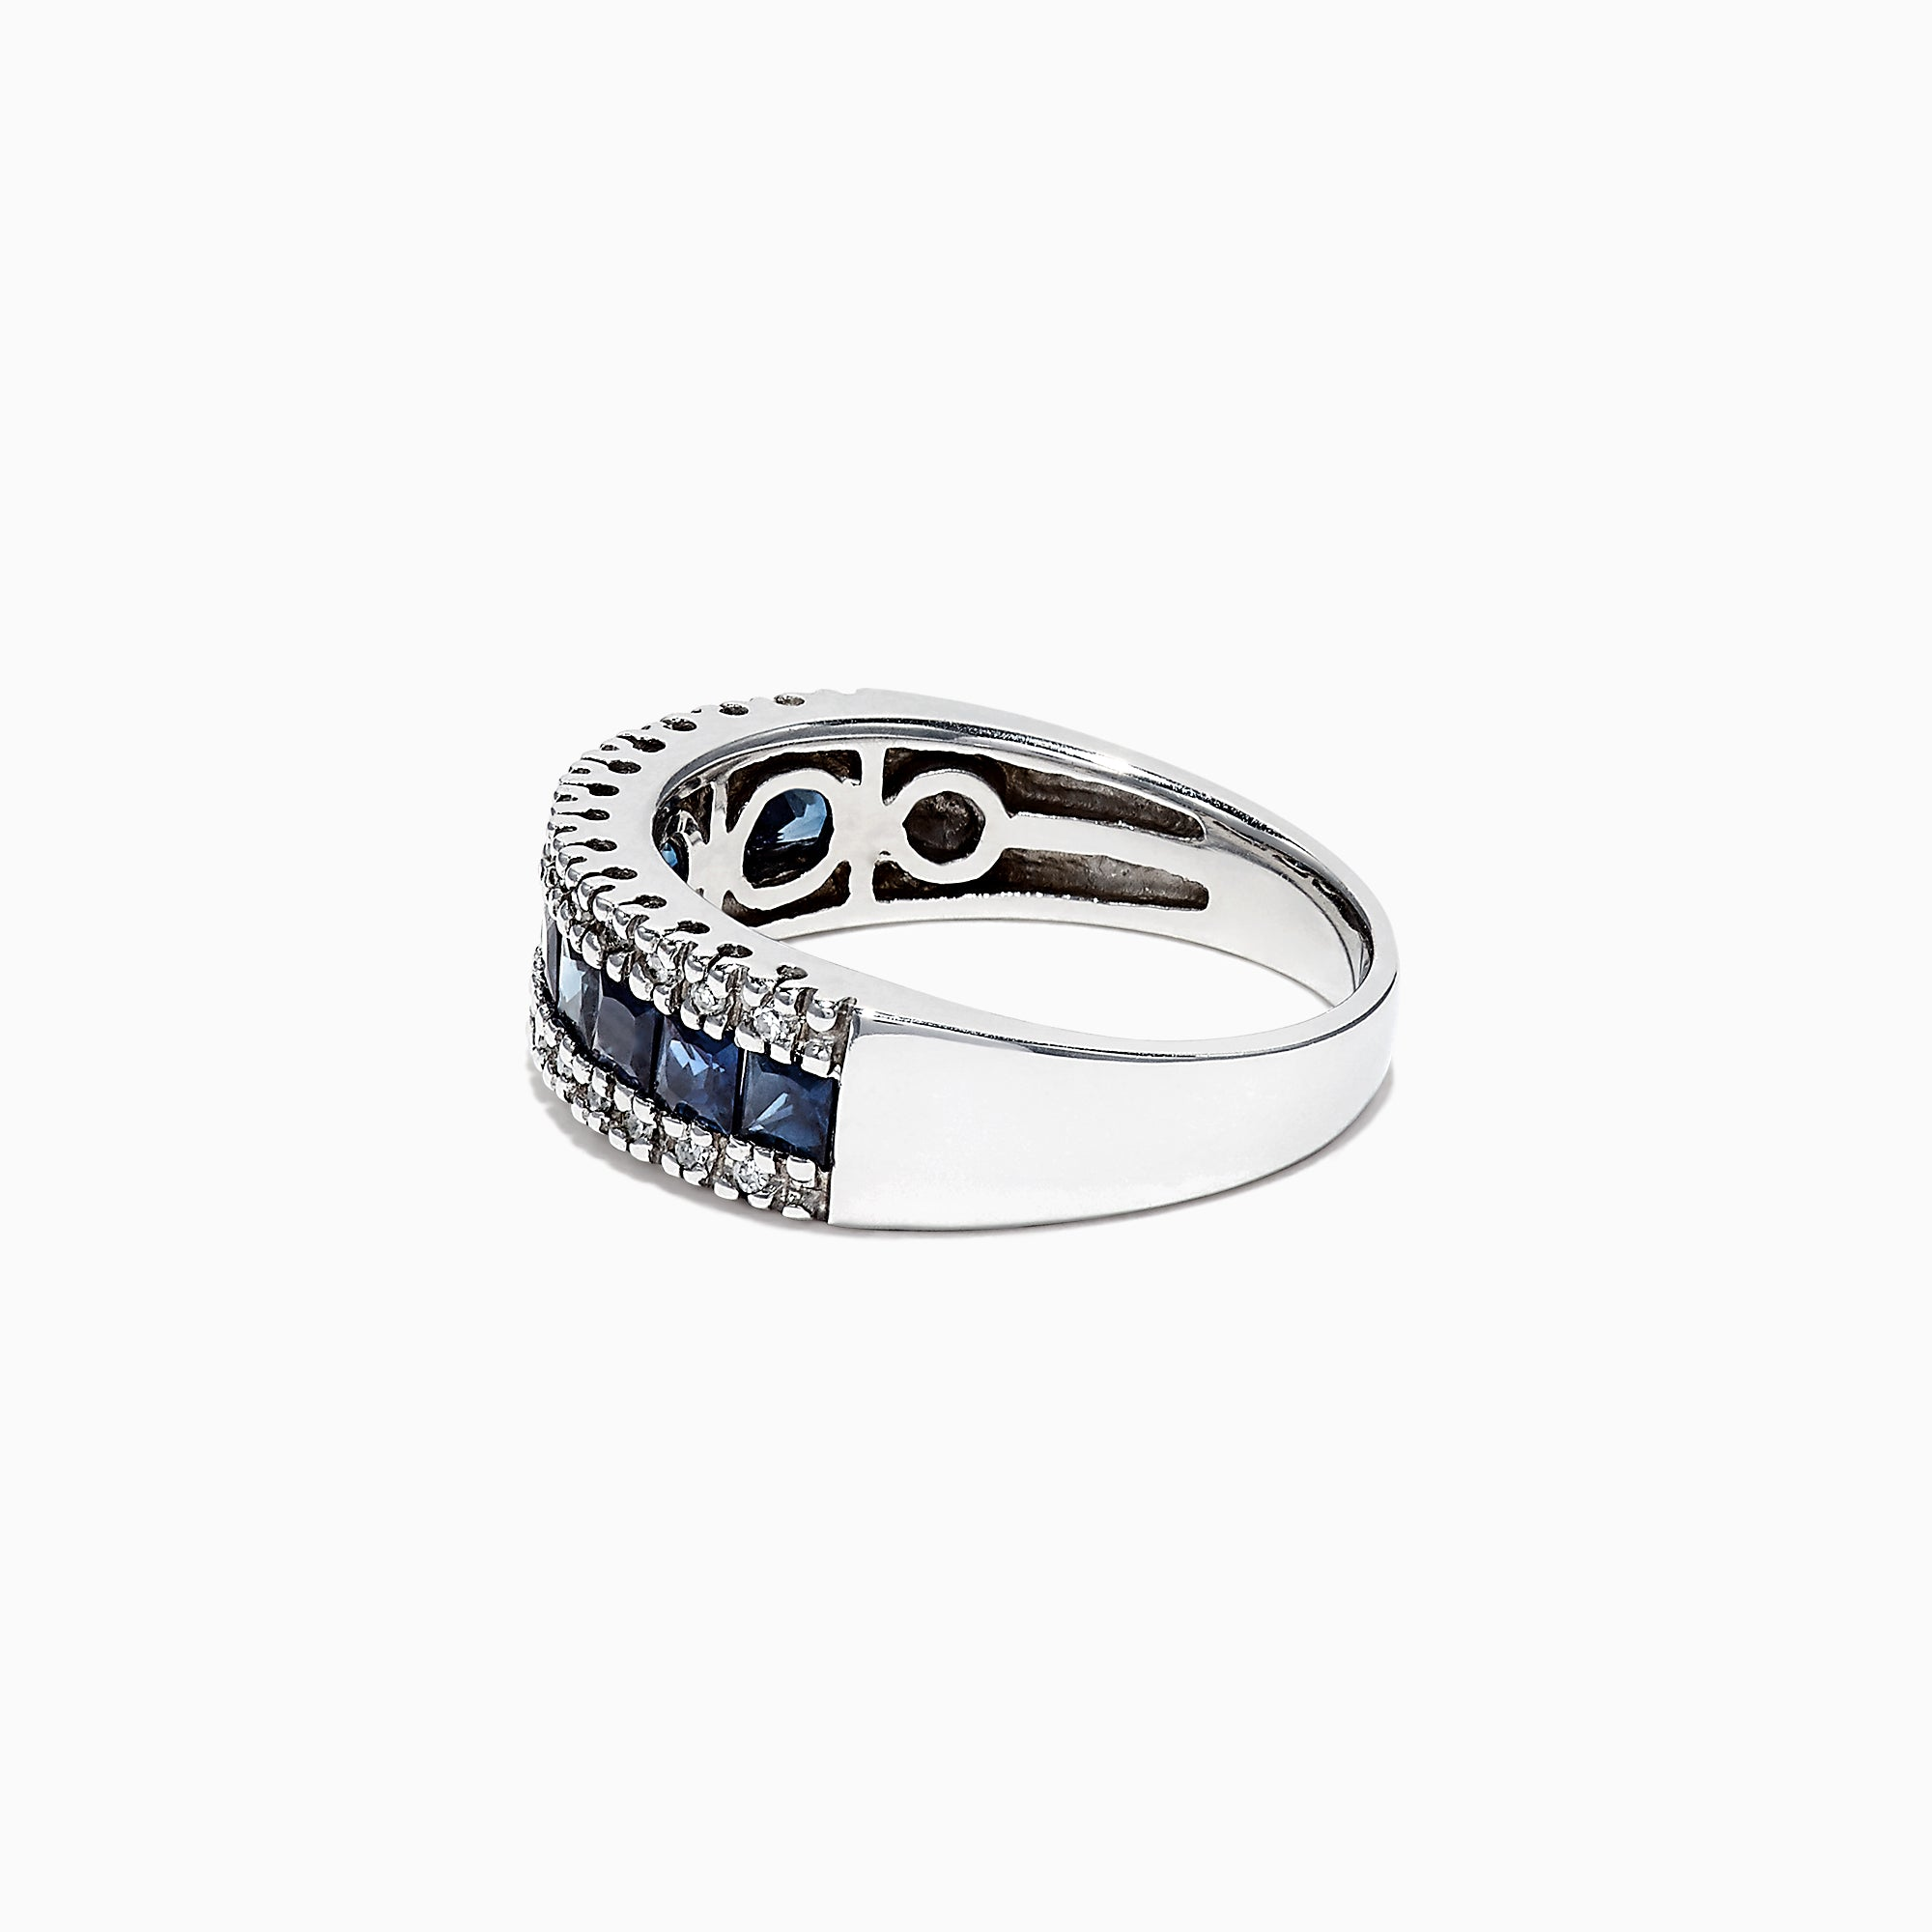 Effy Royale Bleu 14K White Gold Blue Sapphire and Diamond Ring, 1.46 TCW